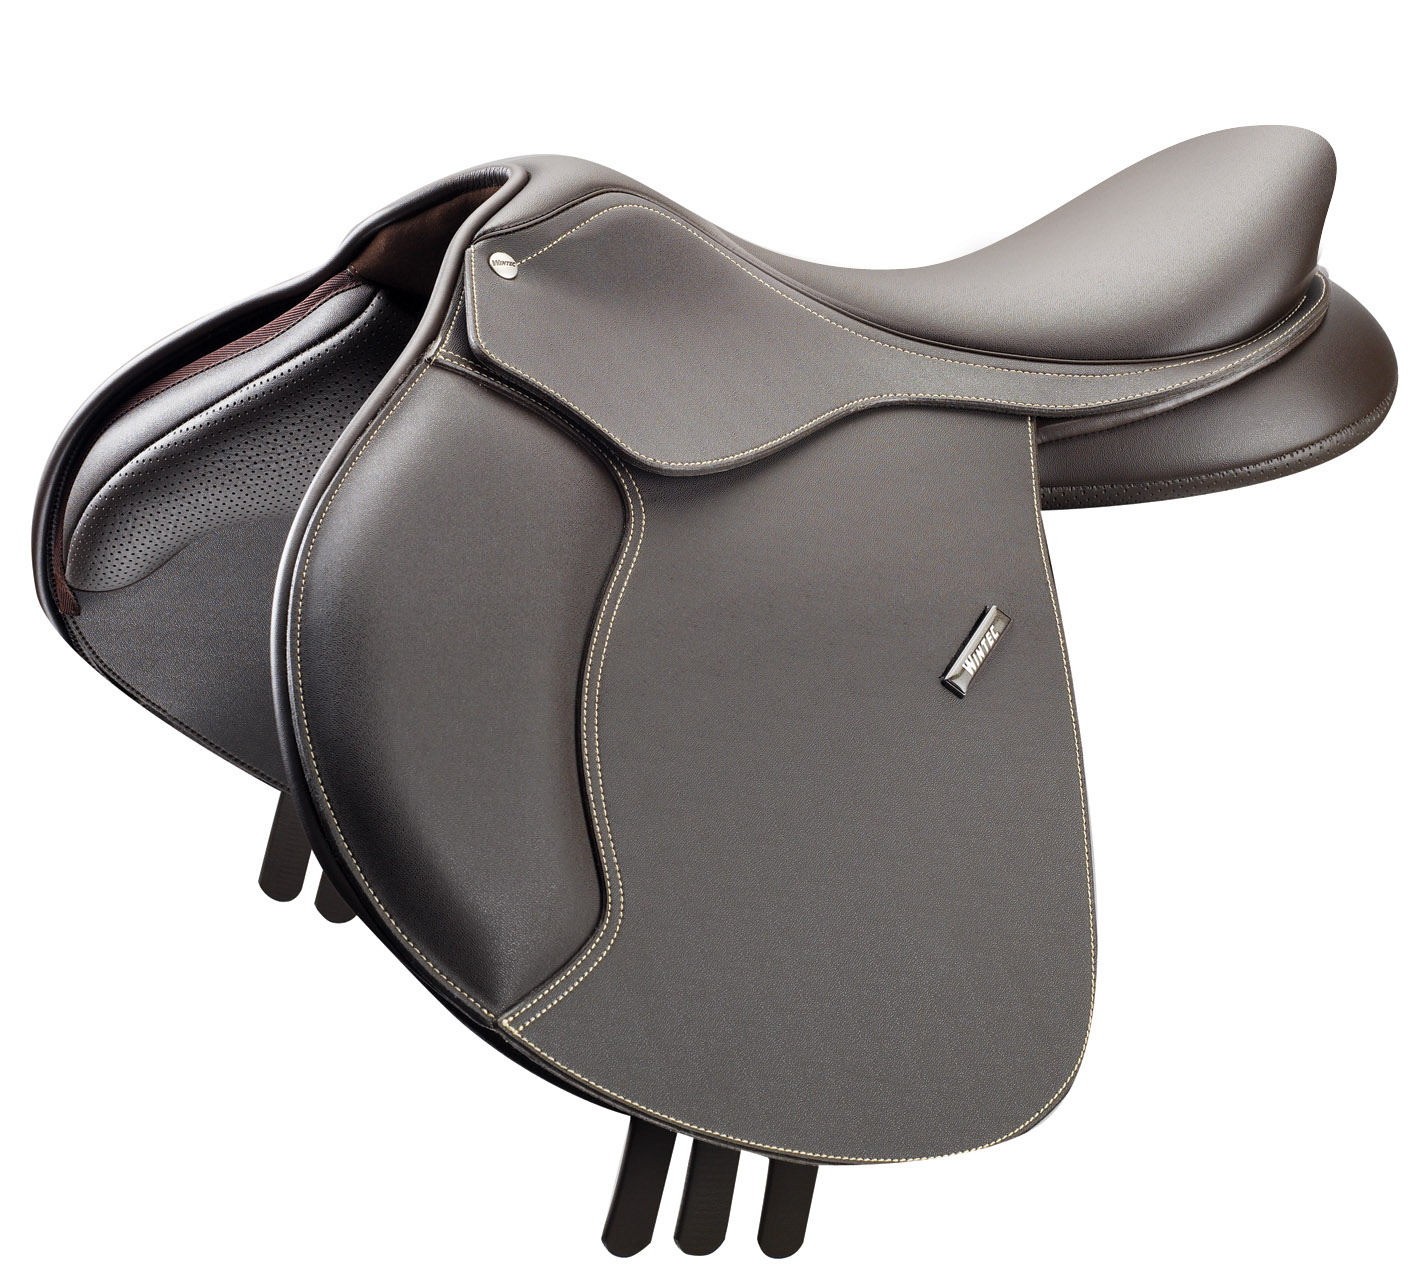 NEW 2012 Wintec 500 Flocked Close Contact Saddle